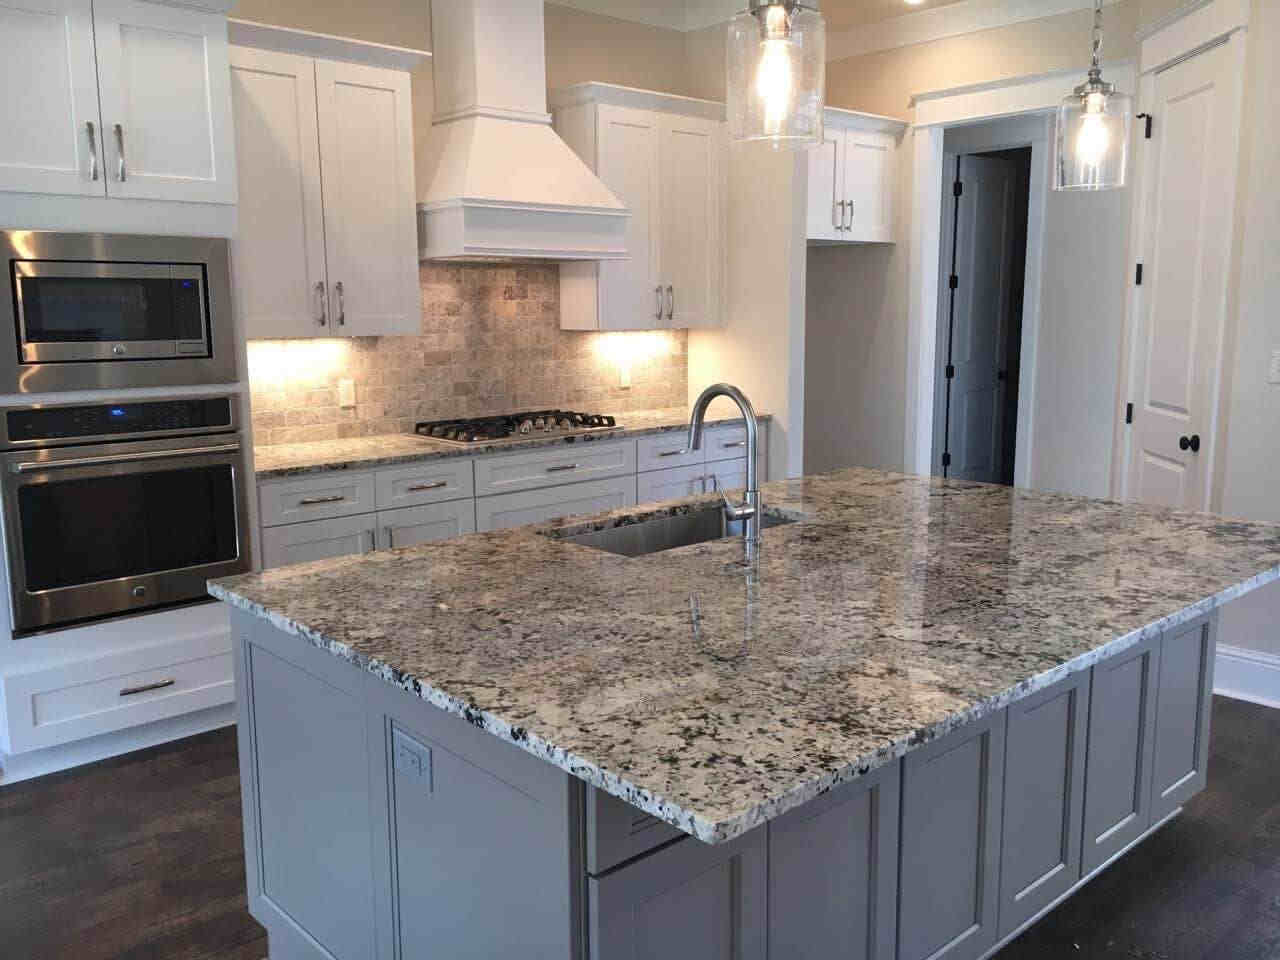 Avigna Granite World Cabinets for the Full Kitchen Remodel & Jacksonville Cabinets - Quality Countertops Jacksonville FL